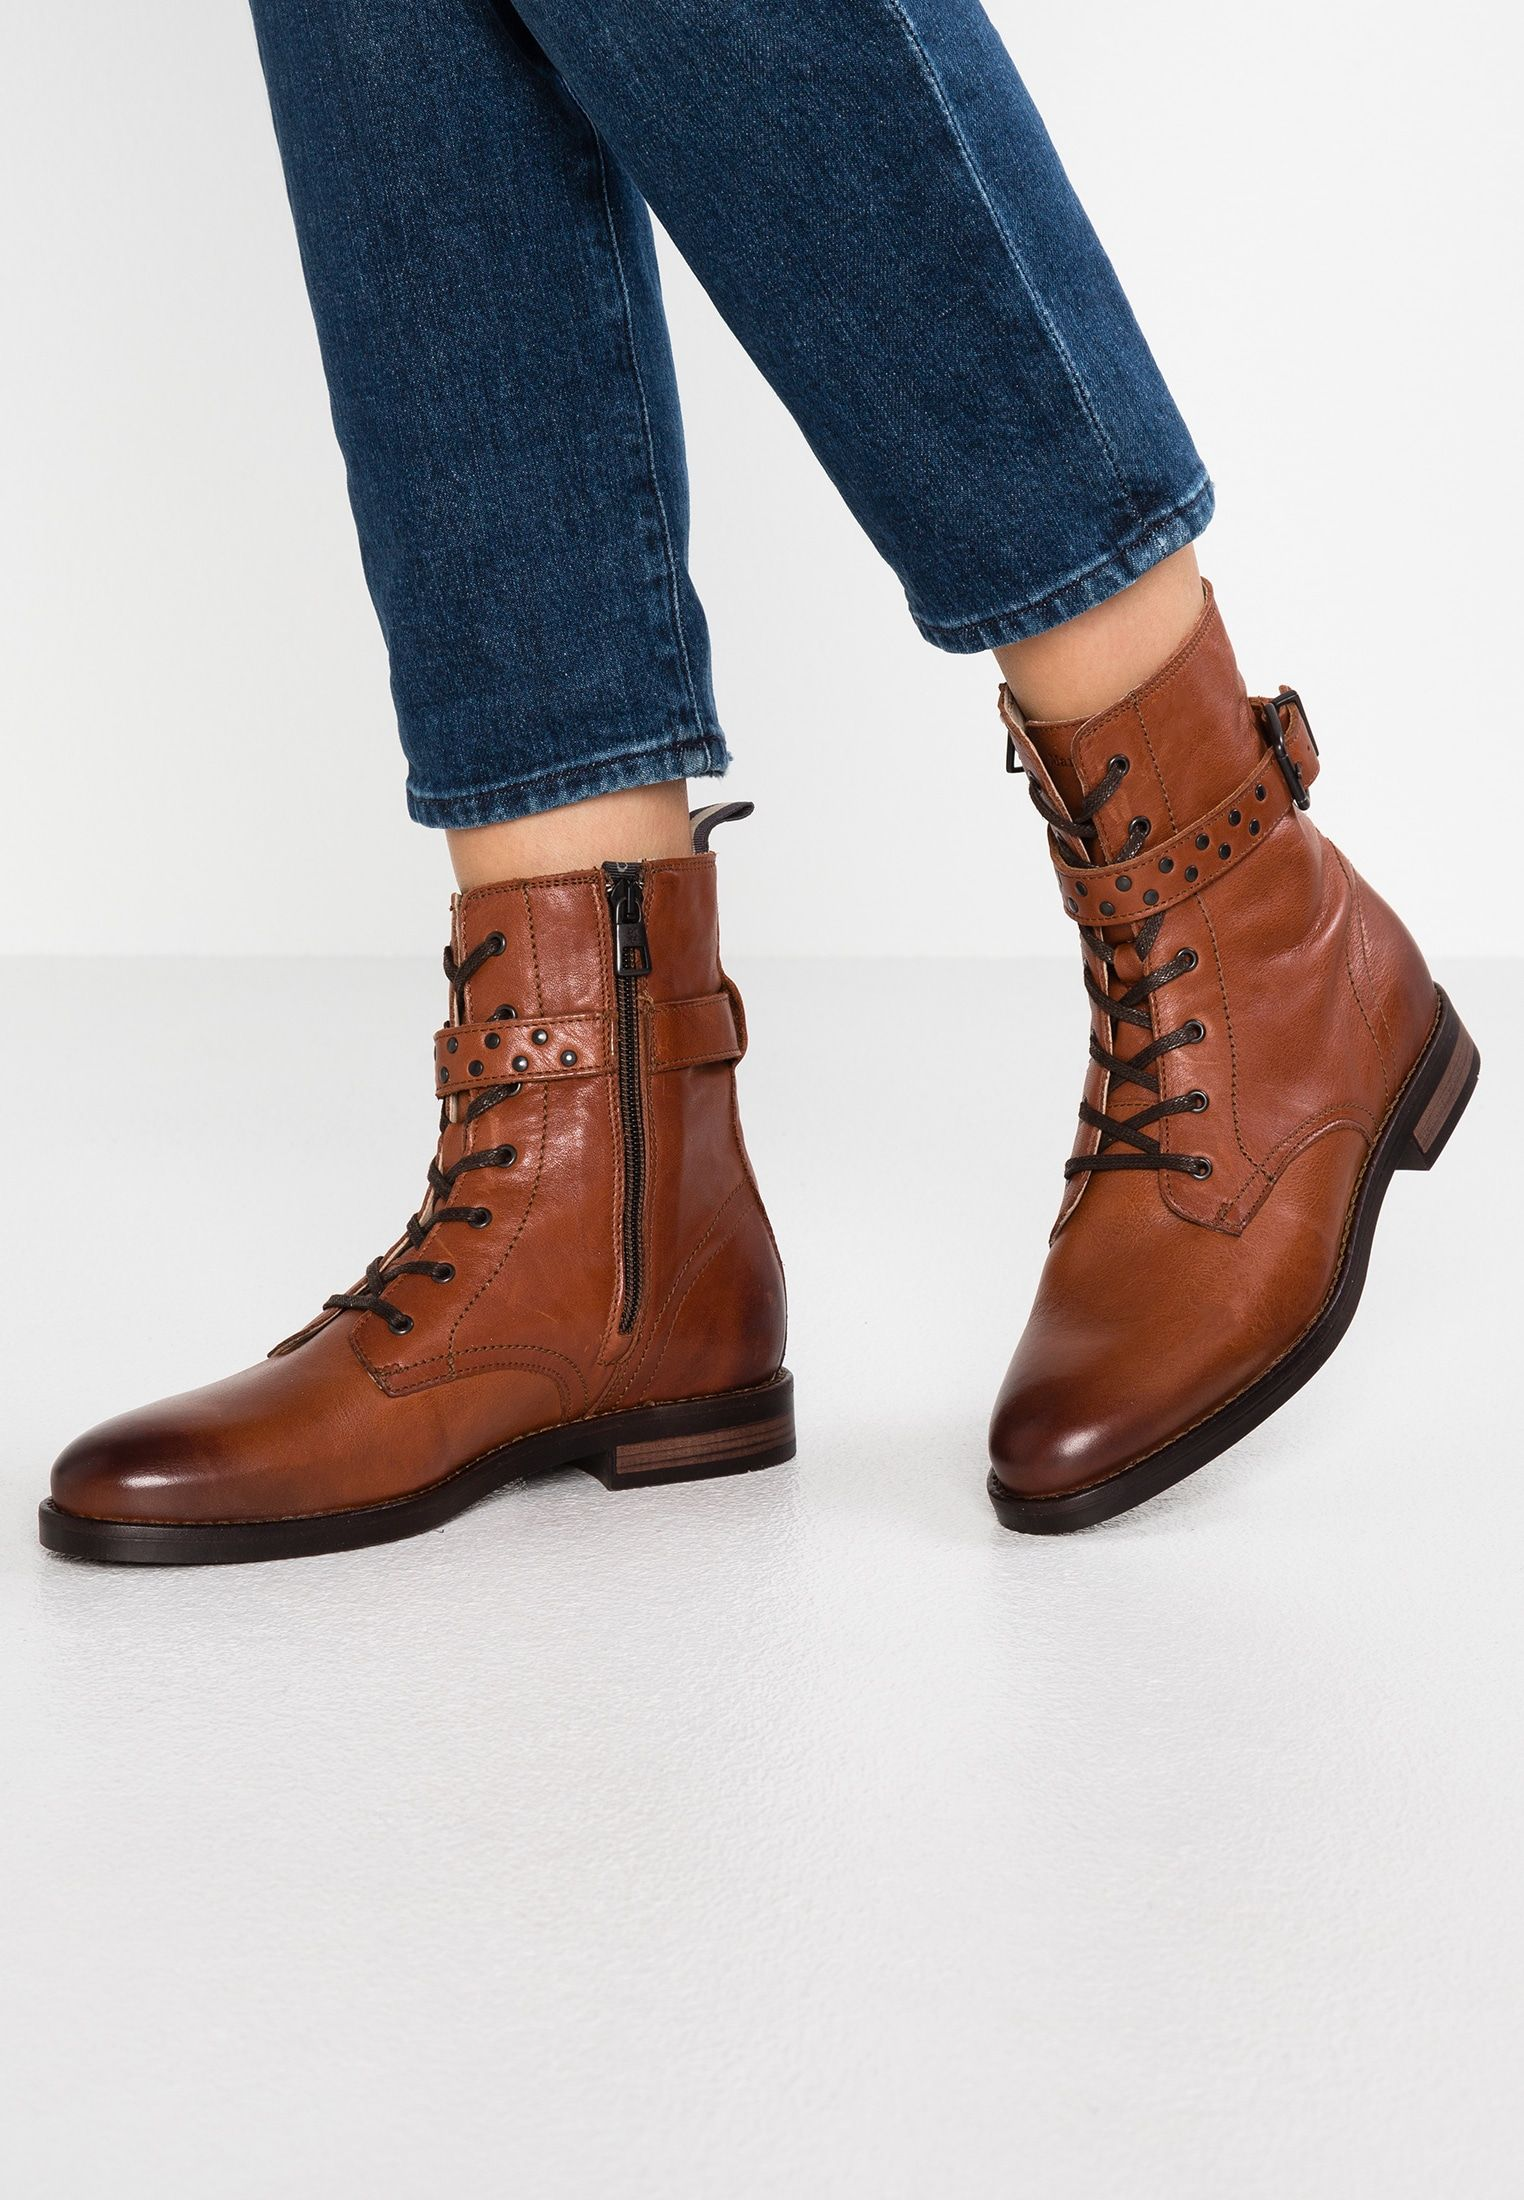 classic styles thoughts on order online Lace-up ankle boots - cognac @ Zalando.de 🛒 | Lace up ankle boots ...